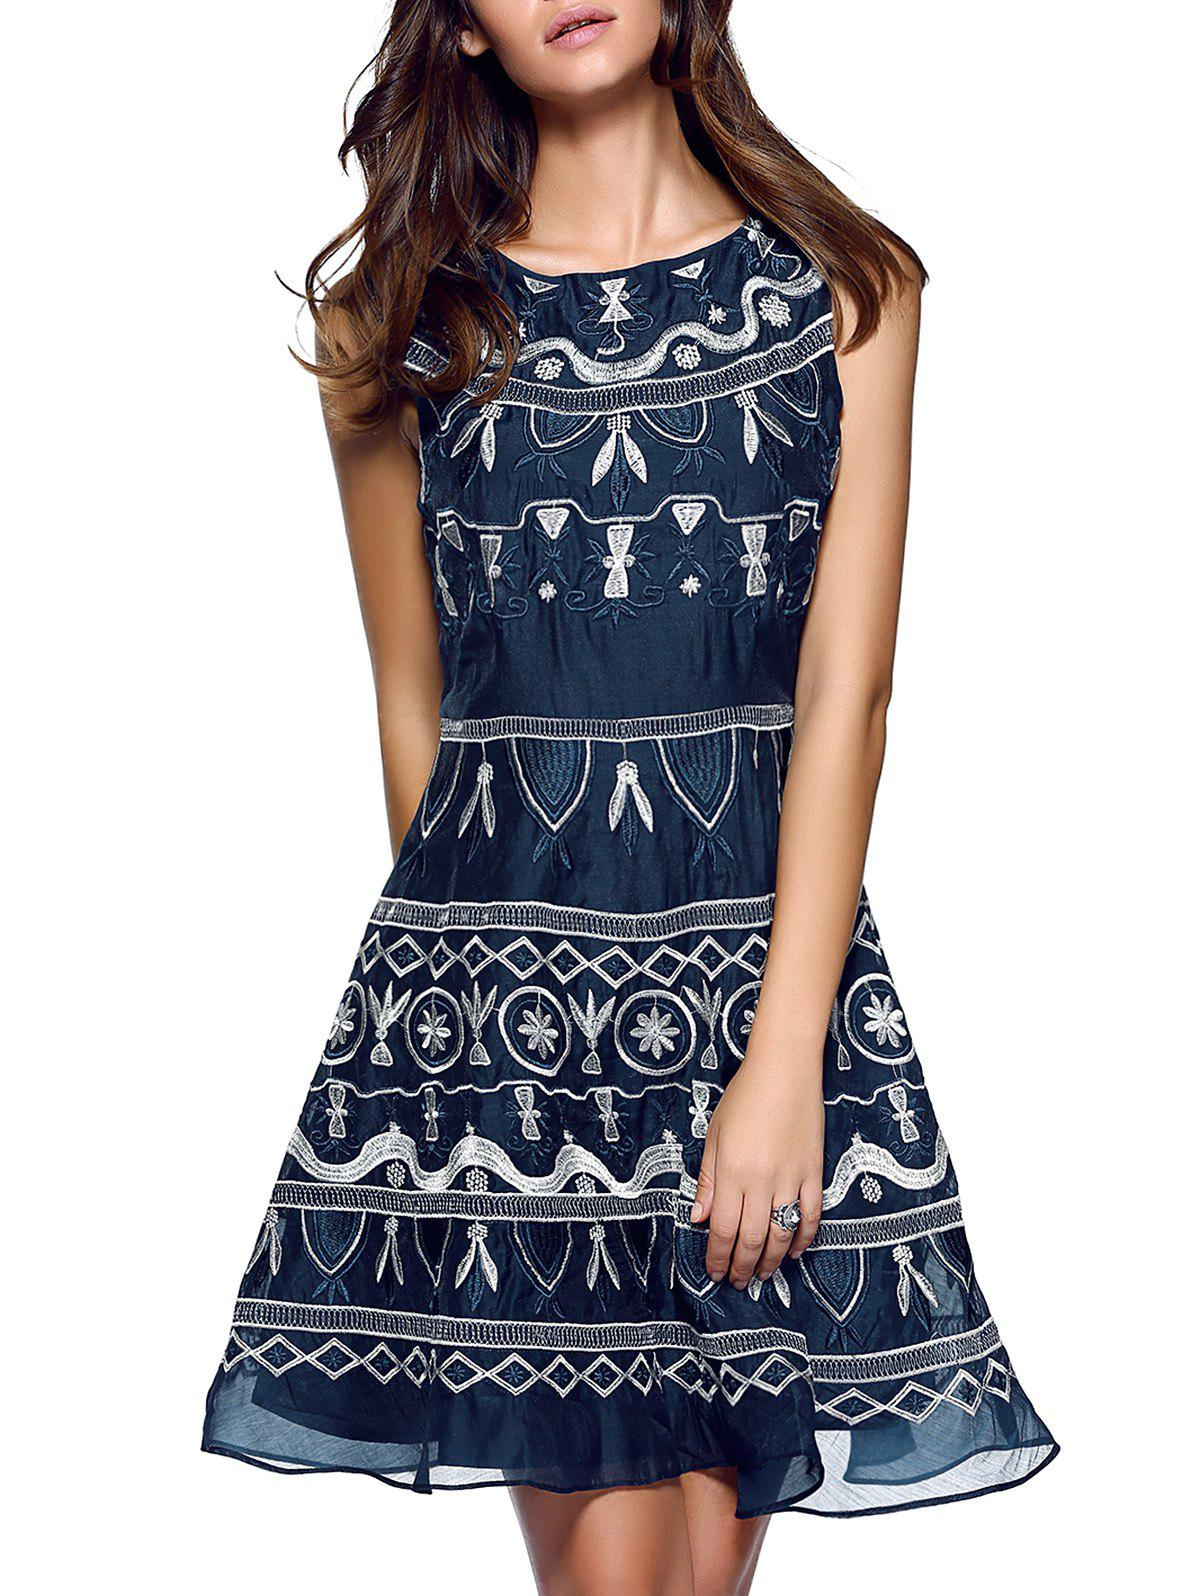 Ethnic Embroidered Flounce Gauze Dress - CADETBLUE L